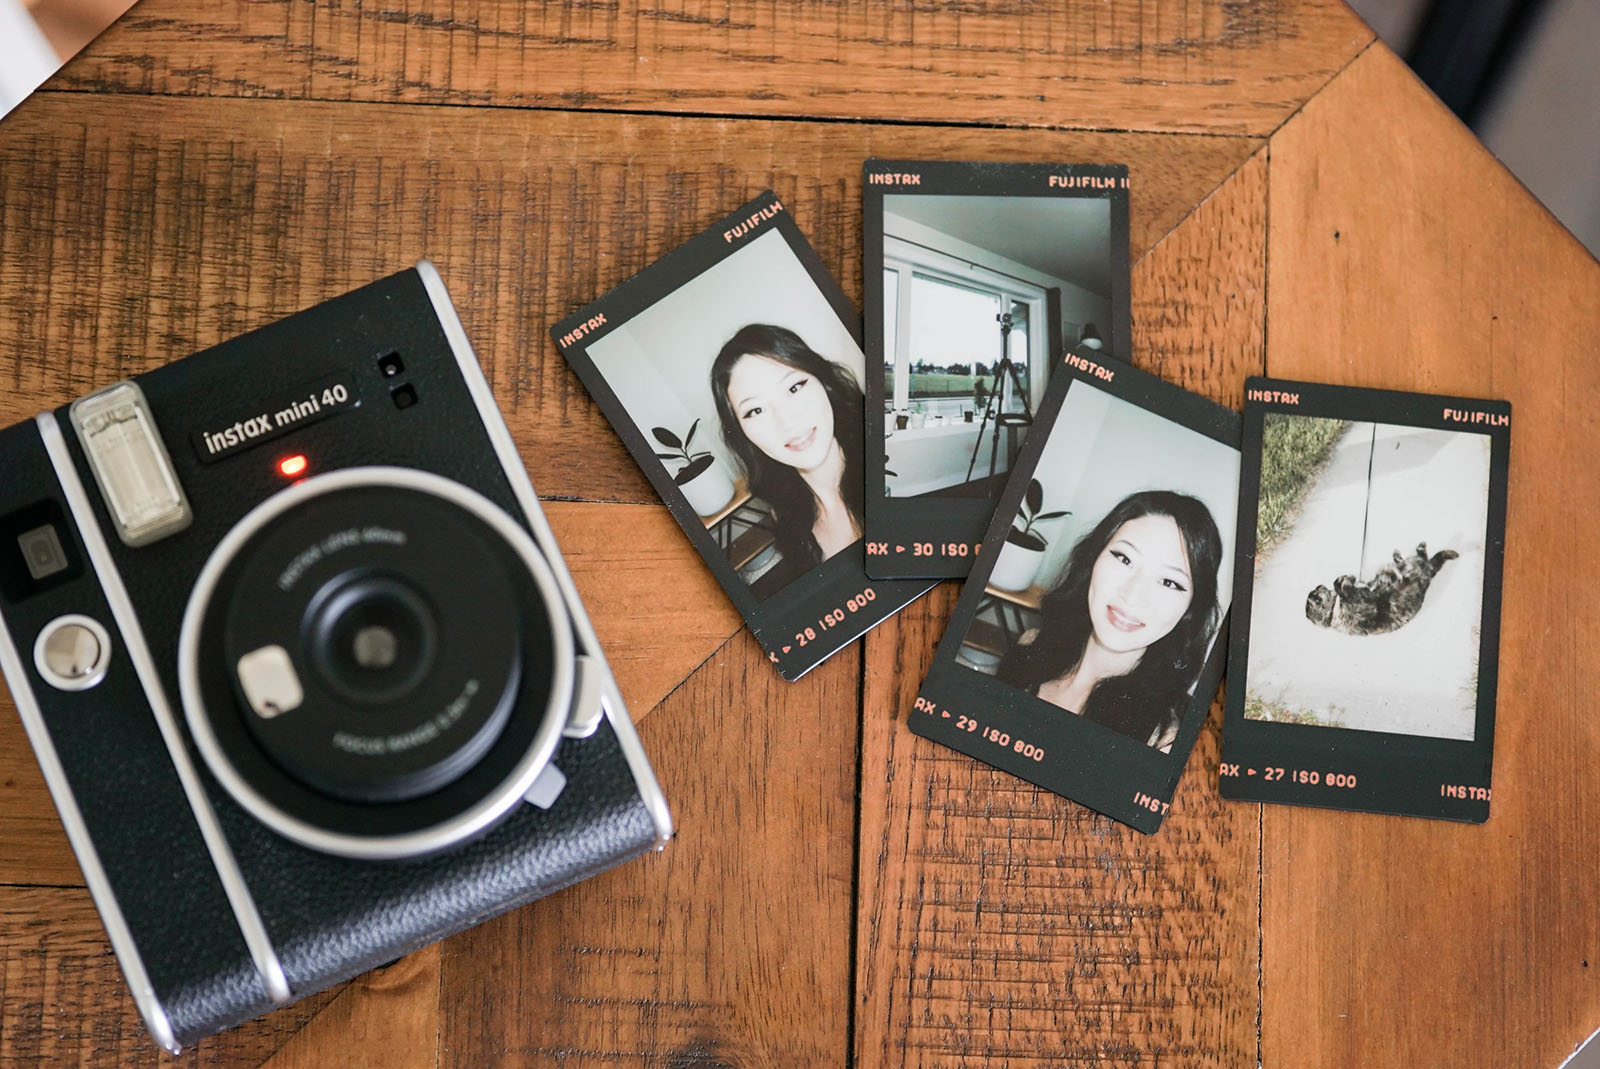 Fujifilm Instax Mini 40 review and samples